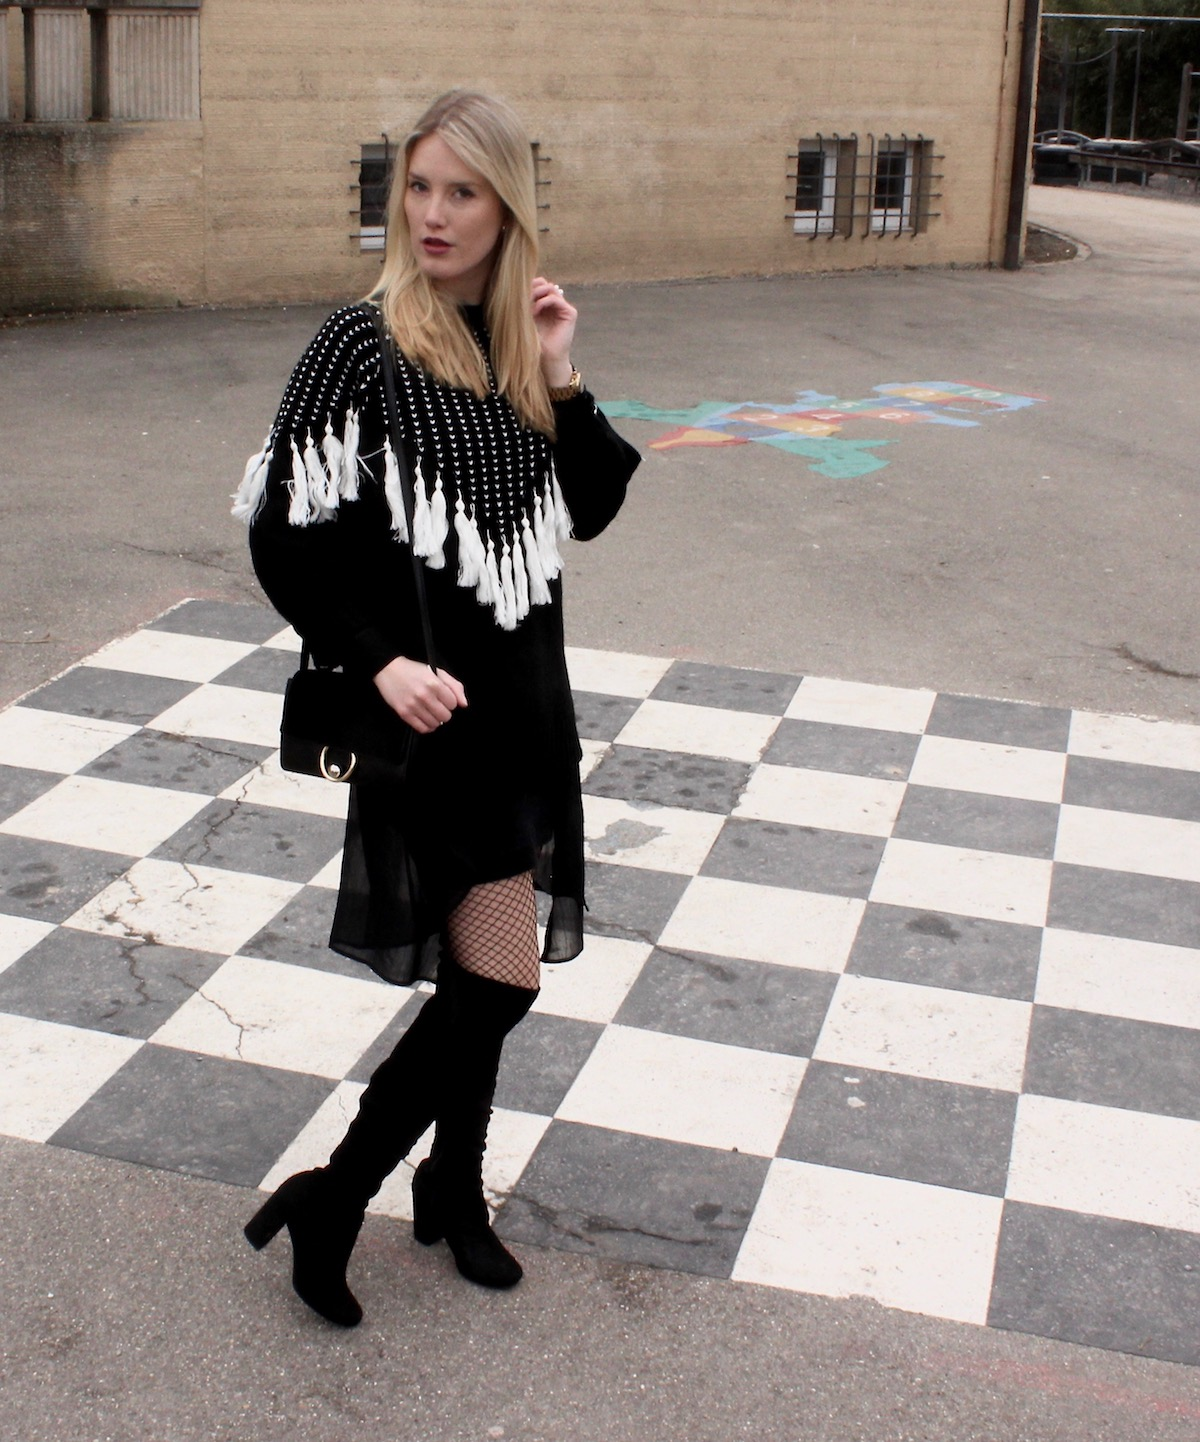 Fashion Outfit: Auffälliger Strickpullover all black